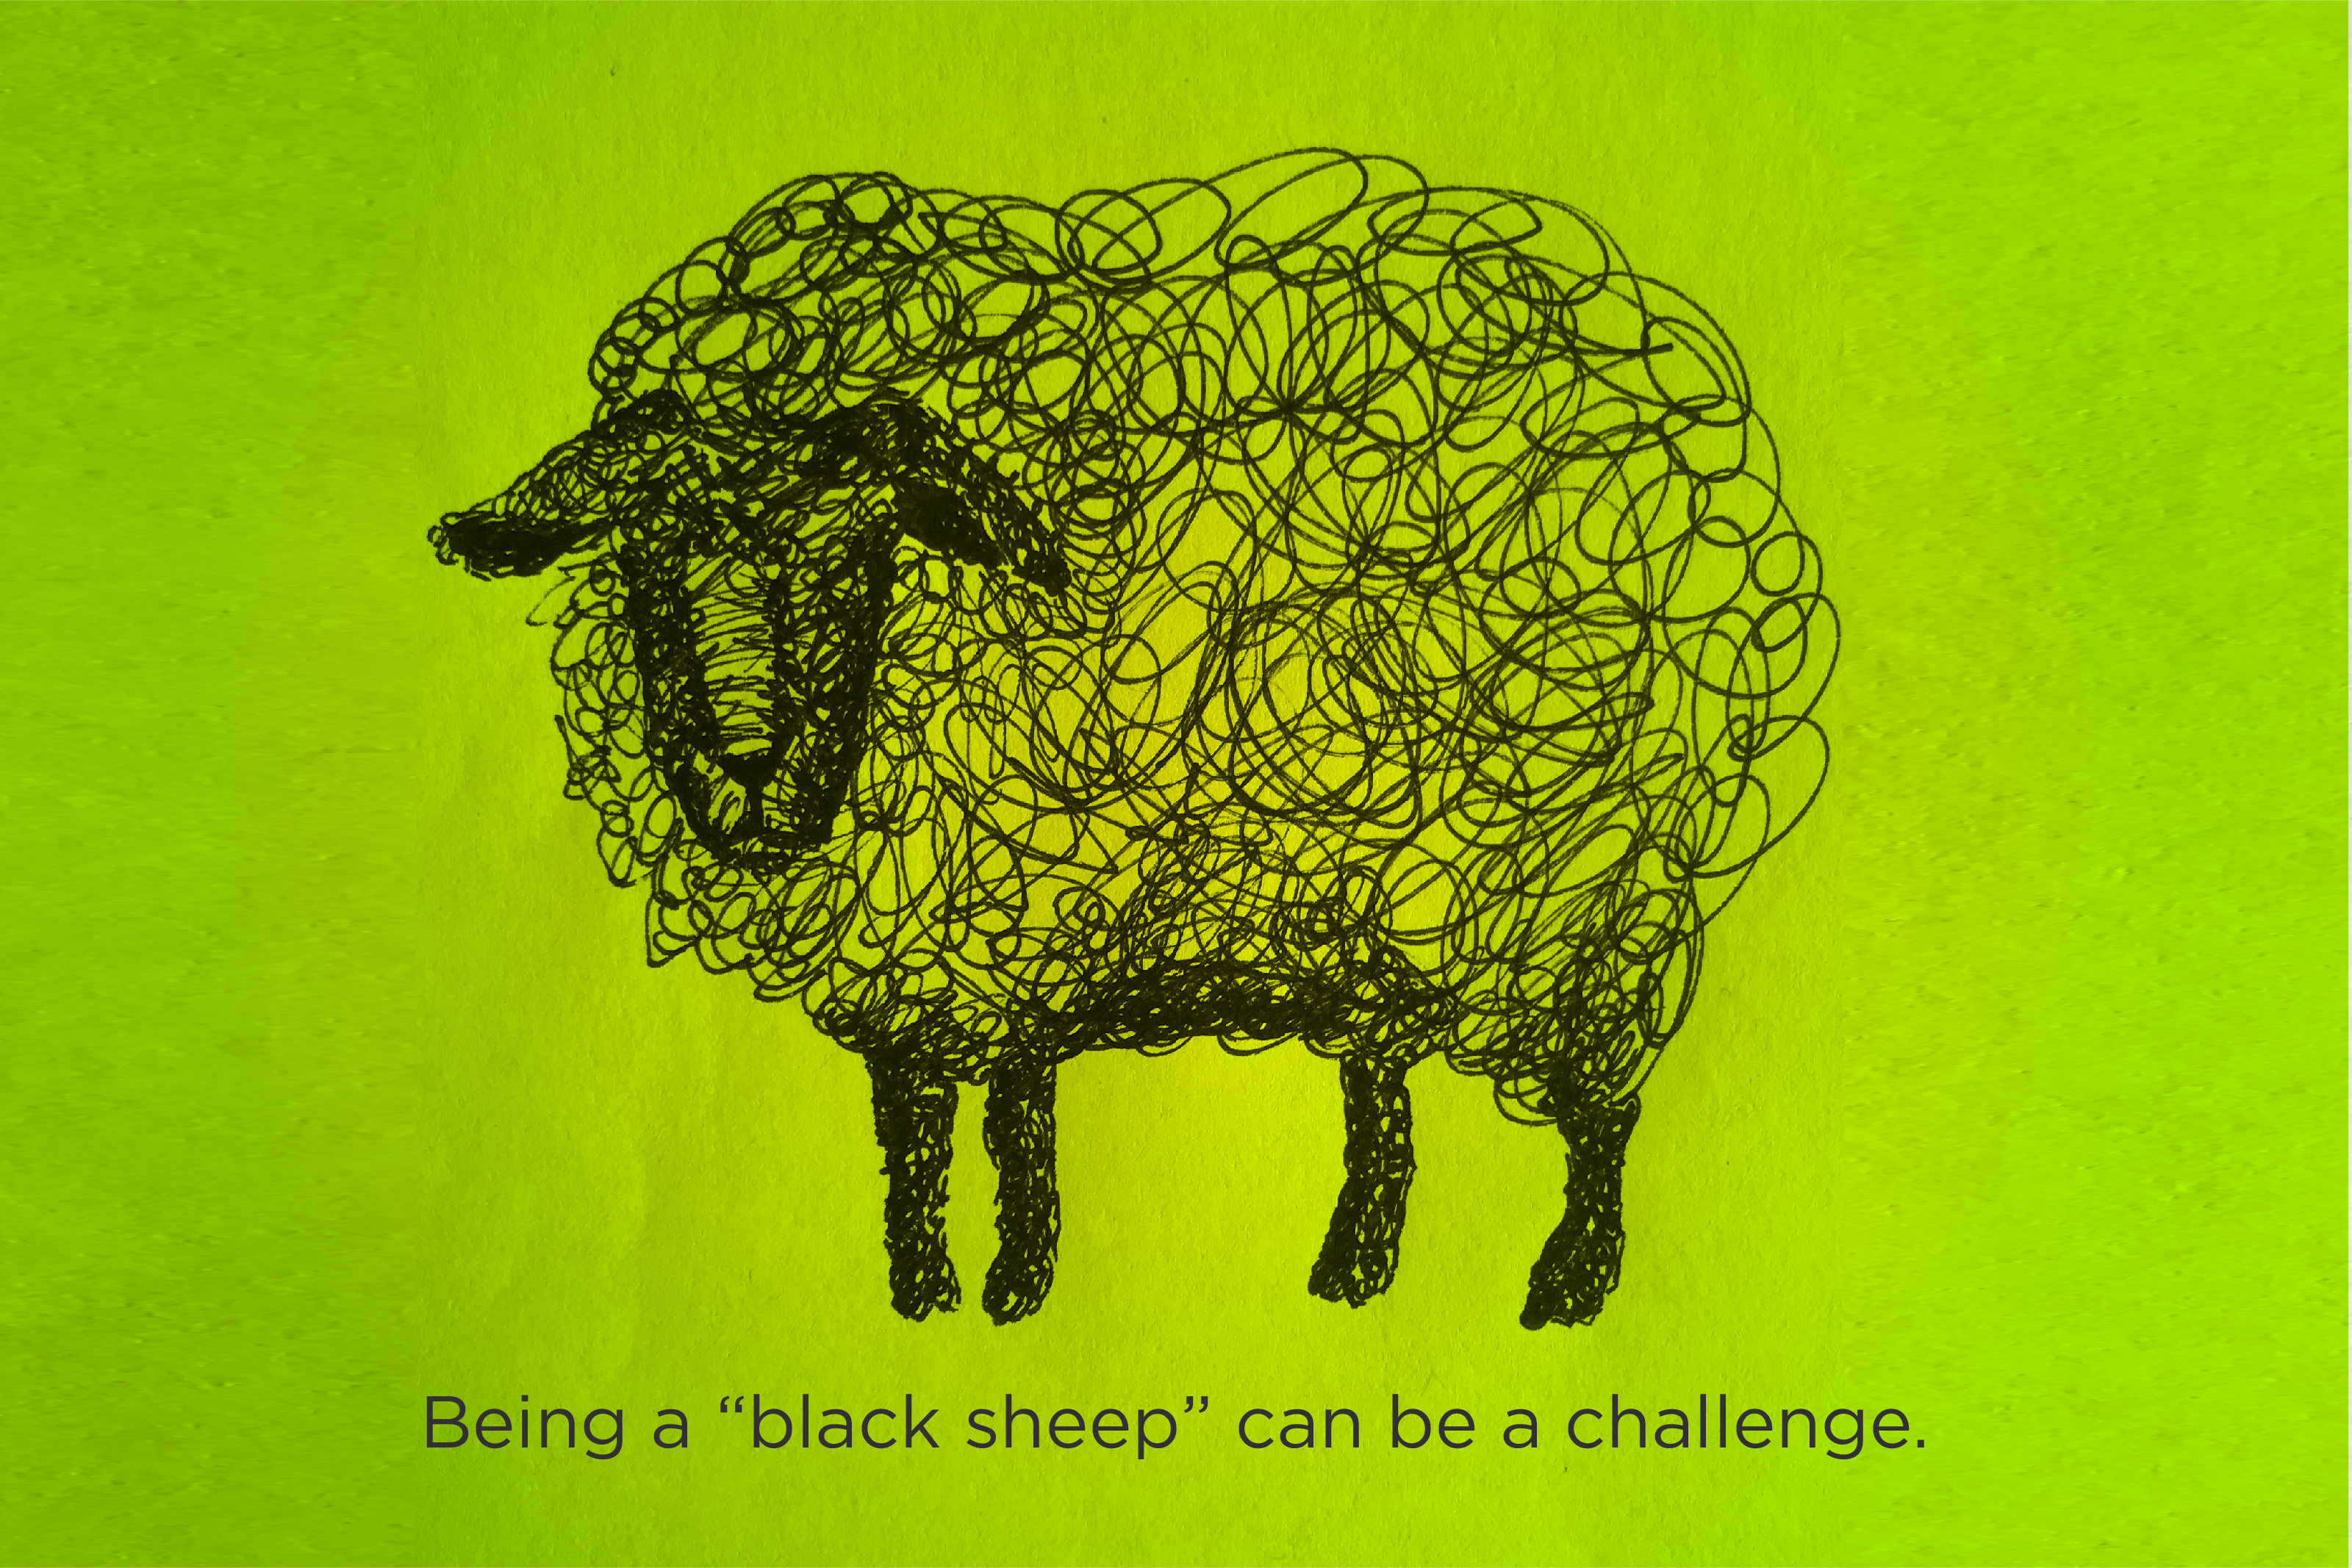 Sketch of a Black sheep.